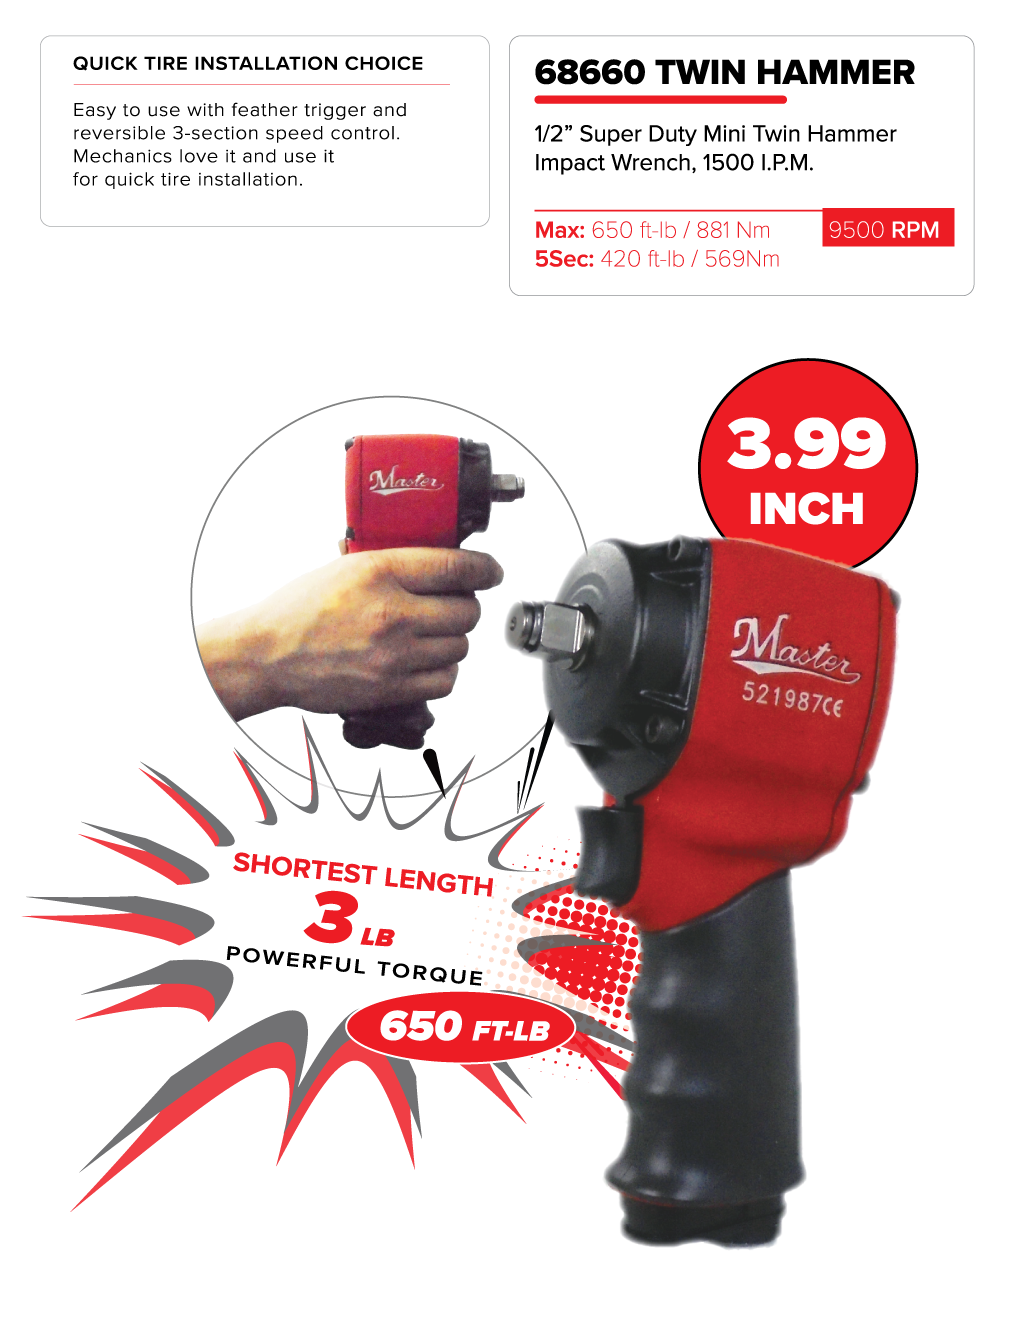 Master Palm® 1/2 Ultra Compact Air Impact Wrench - 650 Ft/lb - 881 Nm/Backorder